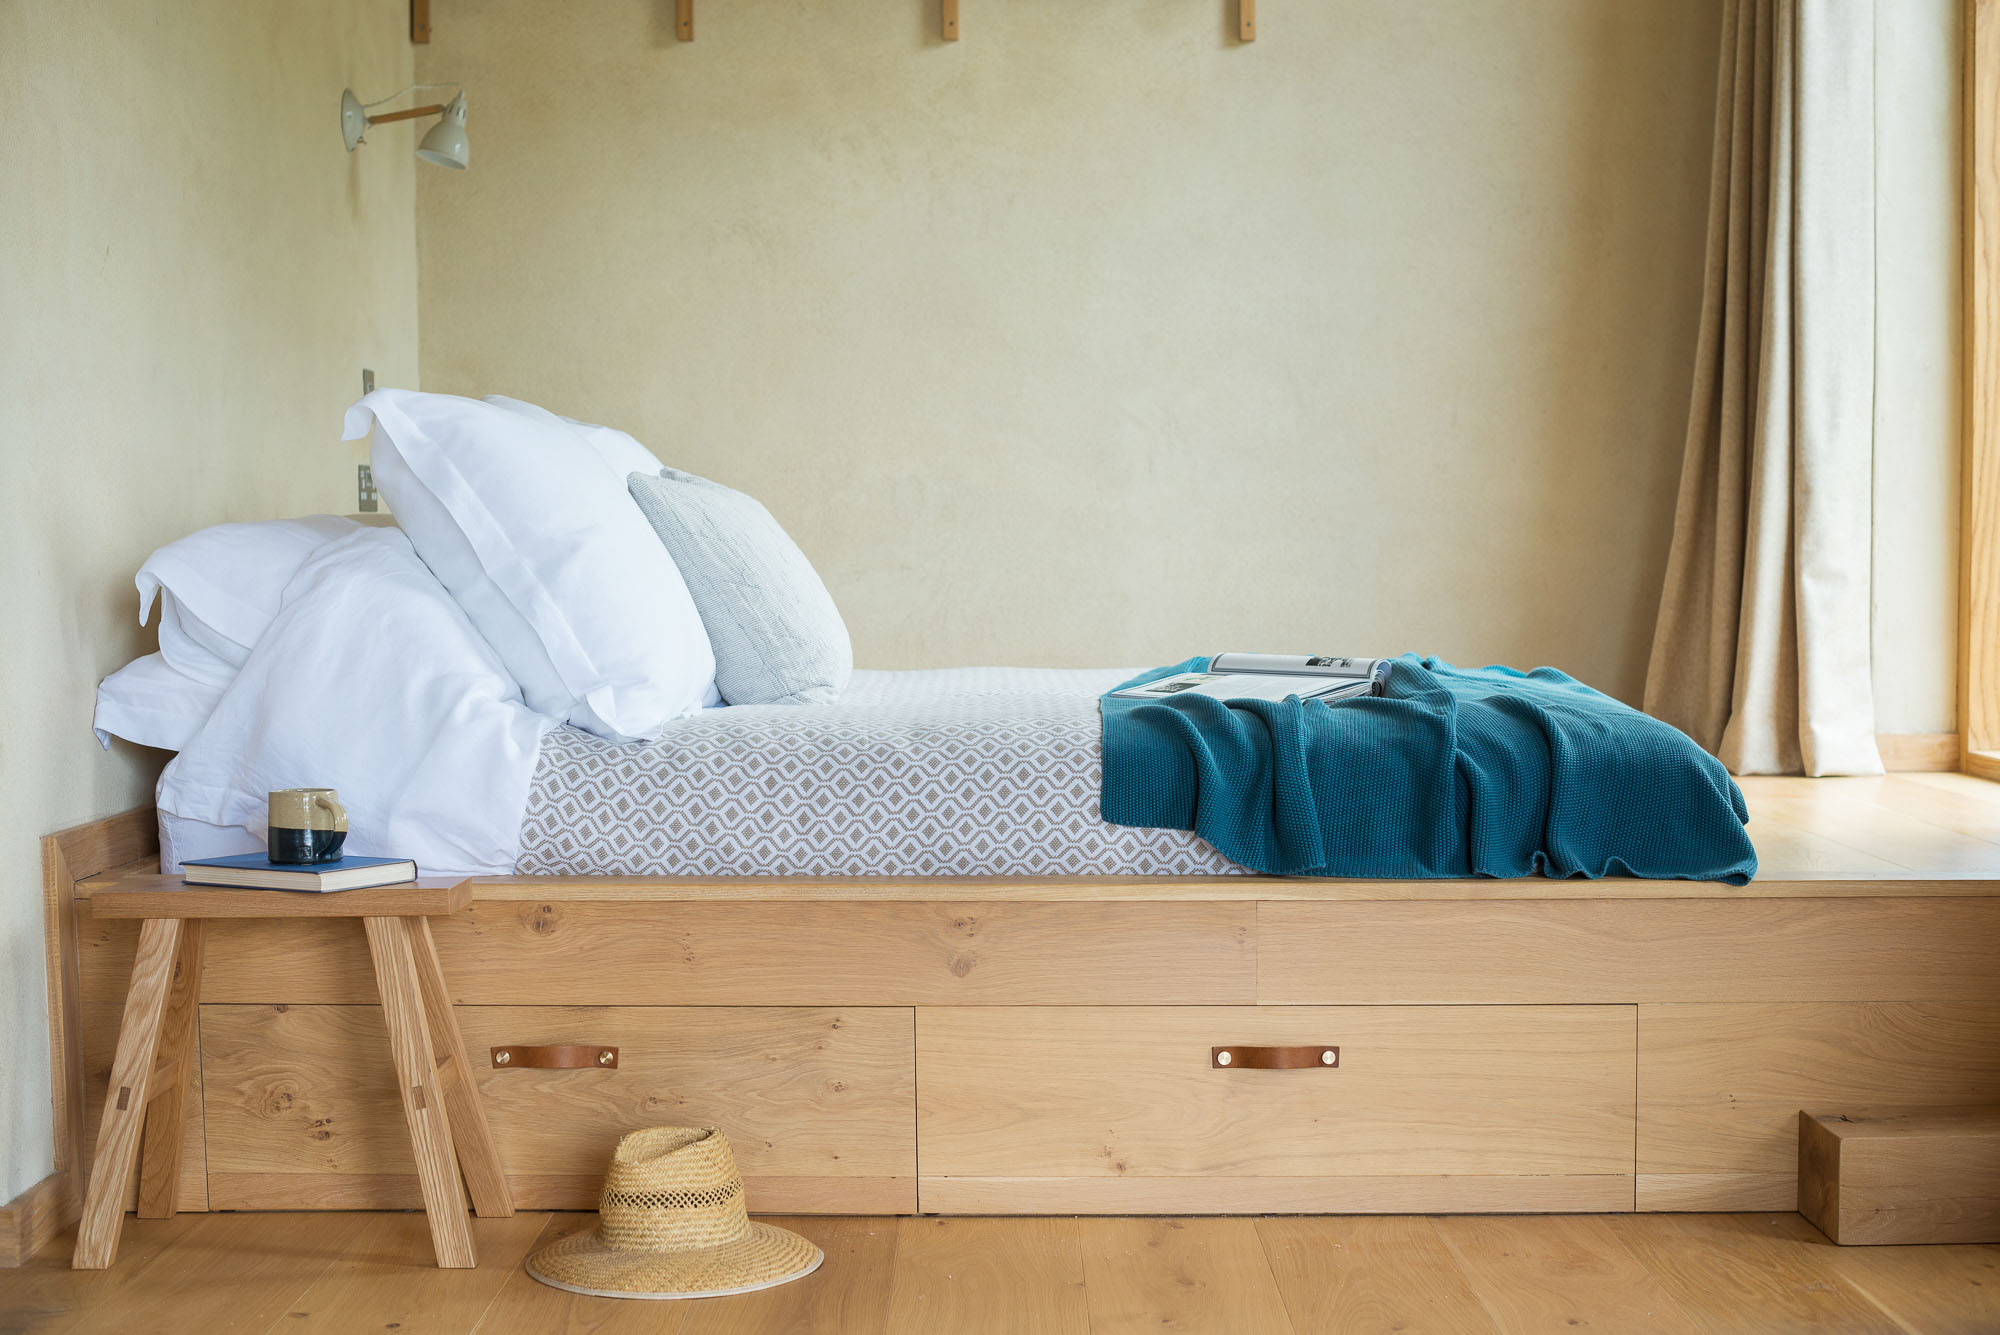 off-grid cabin interior with clay walls king sized oak double bed with leather handles, oak stool and blankets